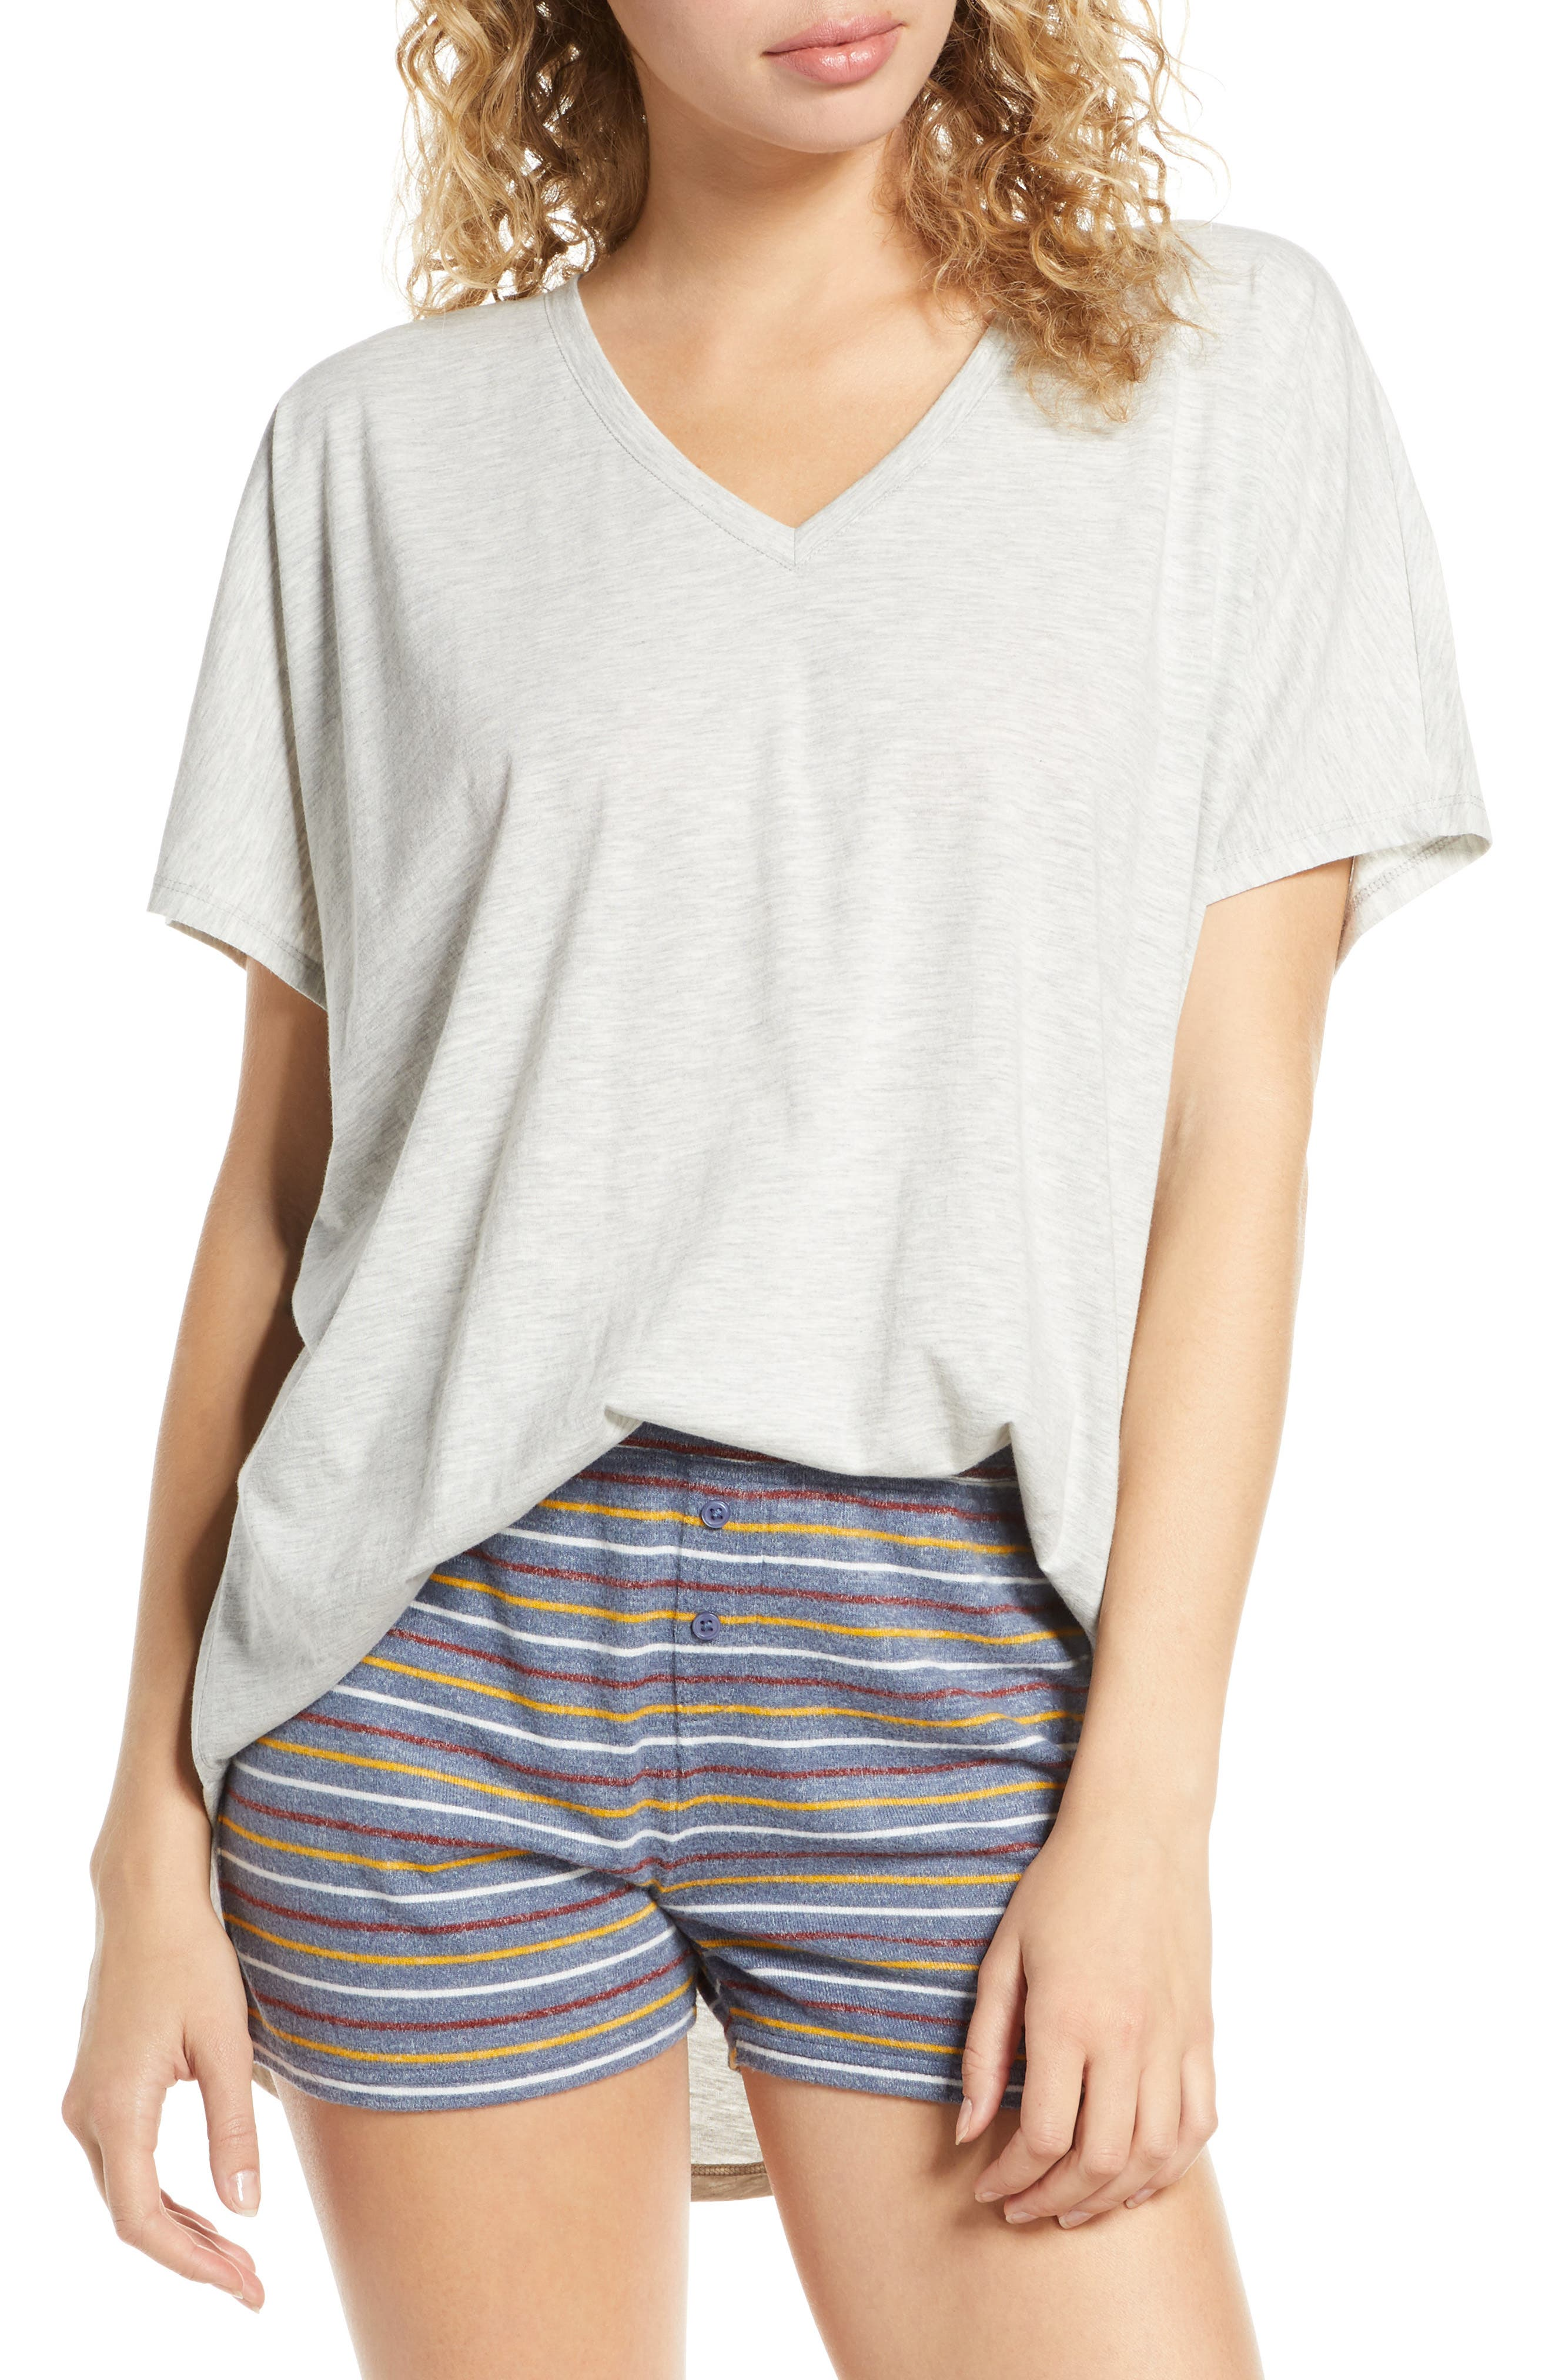 BP. Sleepy Lounge Tee (Regular & Plus Size)